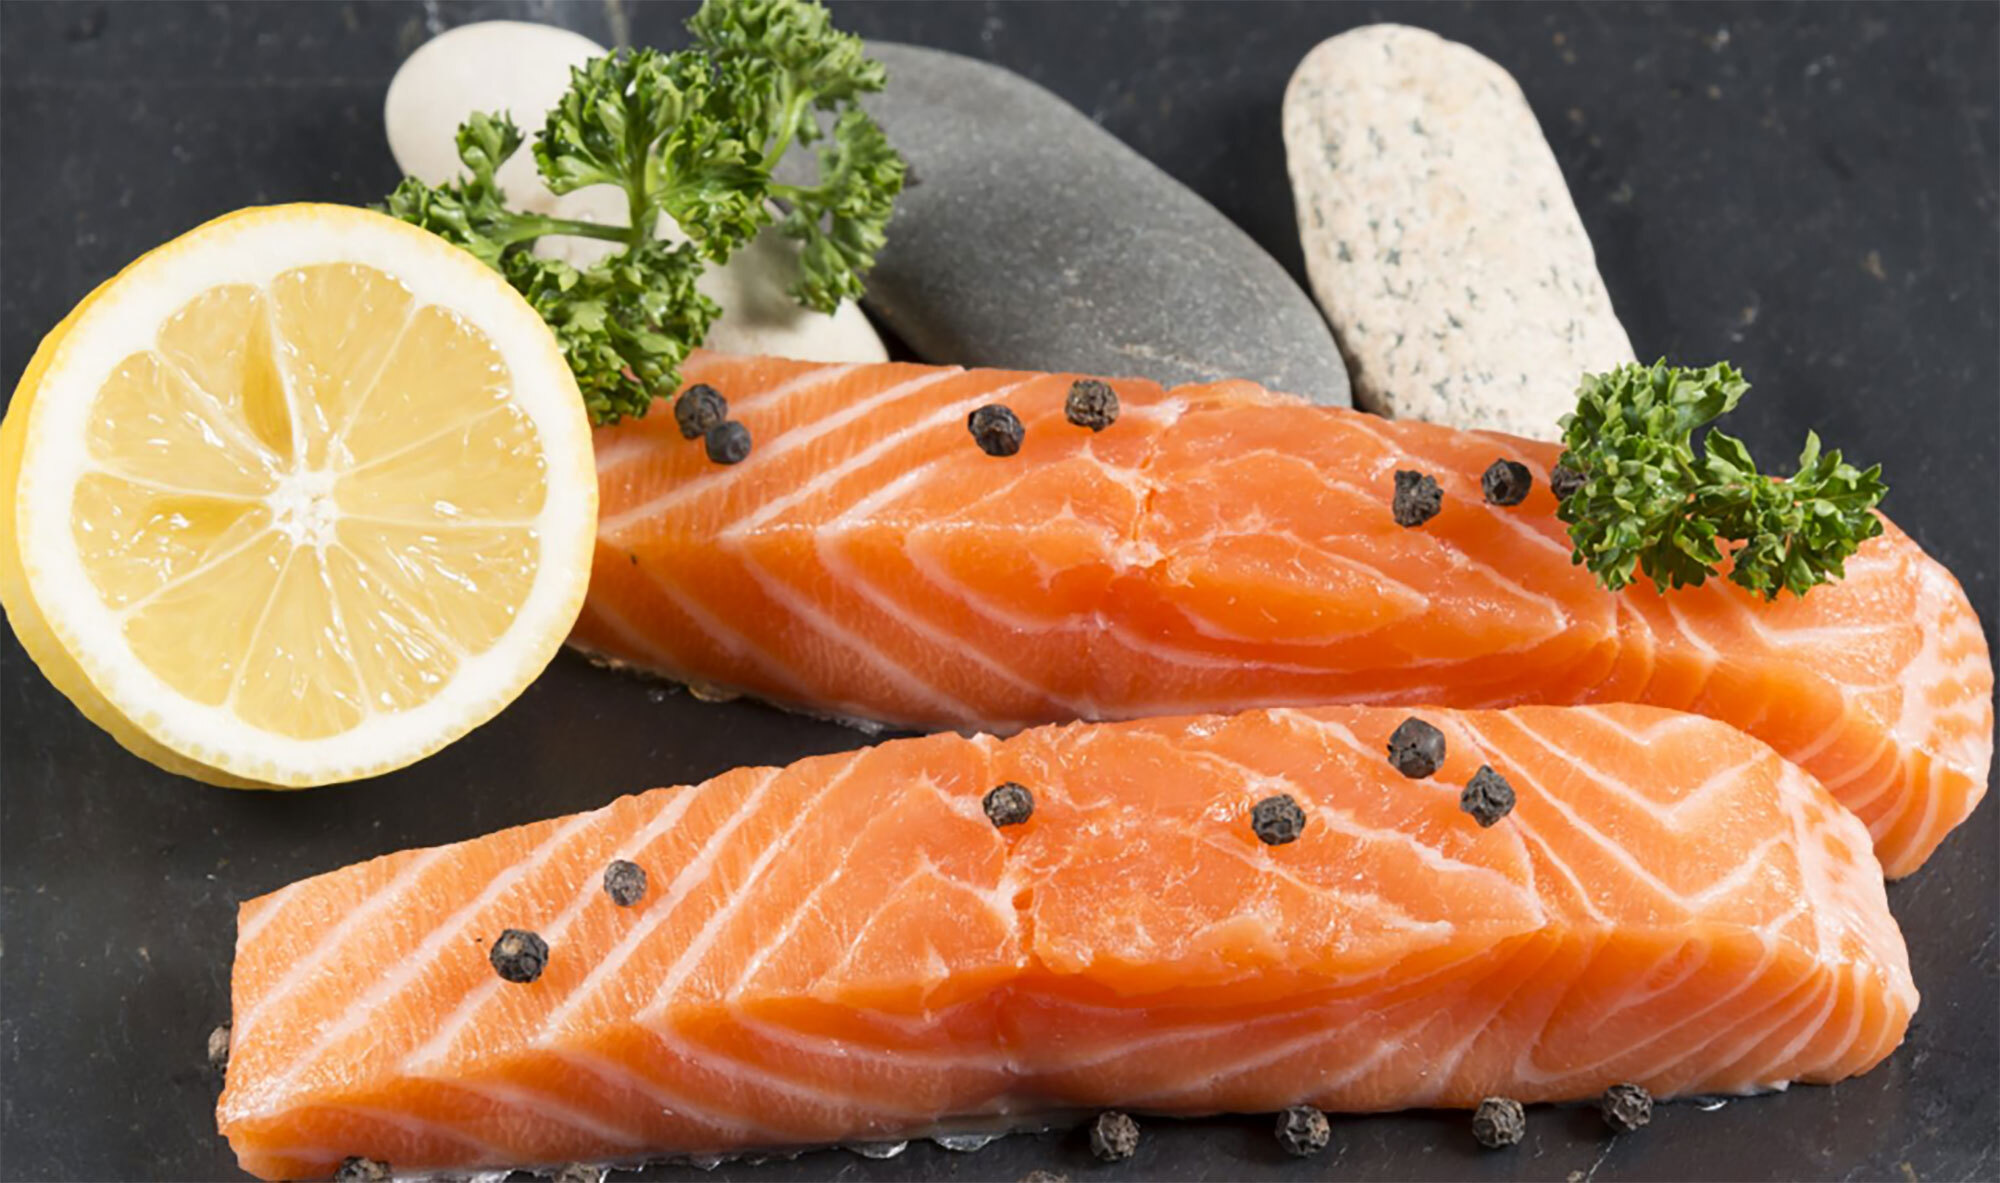 Panaferd® is the natural choice for health and color in aquaculture species including salmonids and crustaceans by supplying a wide range of super antioxidants and red carotenoids through a naturally fermented additive.